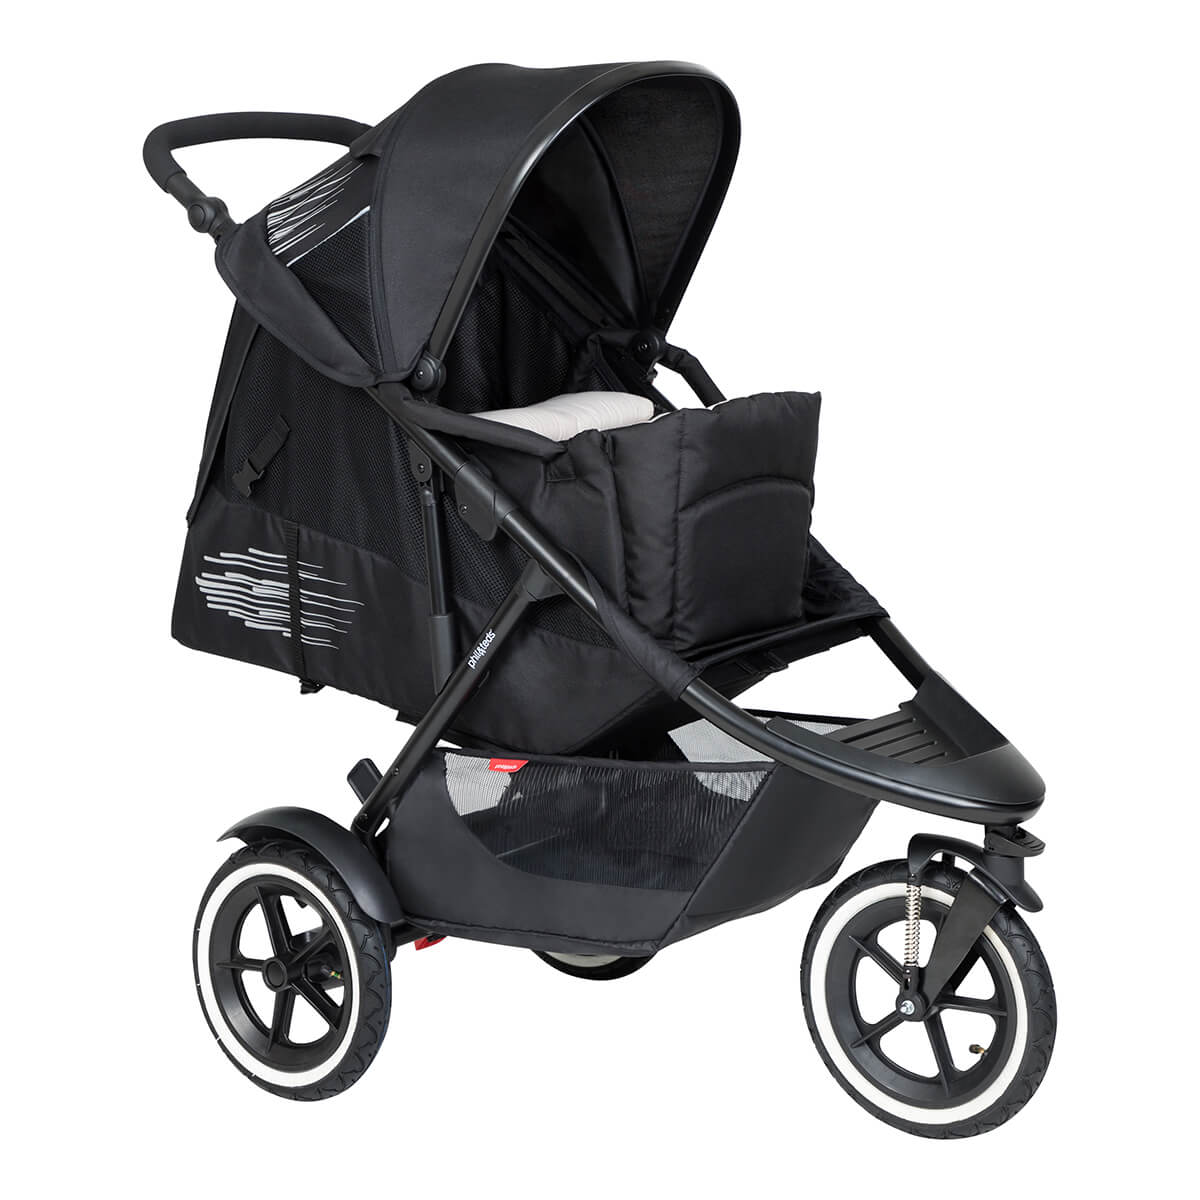 https://cdn.accentuate.io/4394876928105/19119322529897/philteds-sport-buggy-with-cocoon-full-recline-v1626484877606.jpg?1200x1200